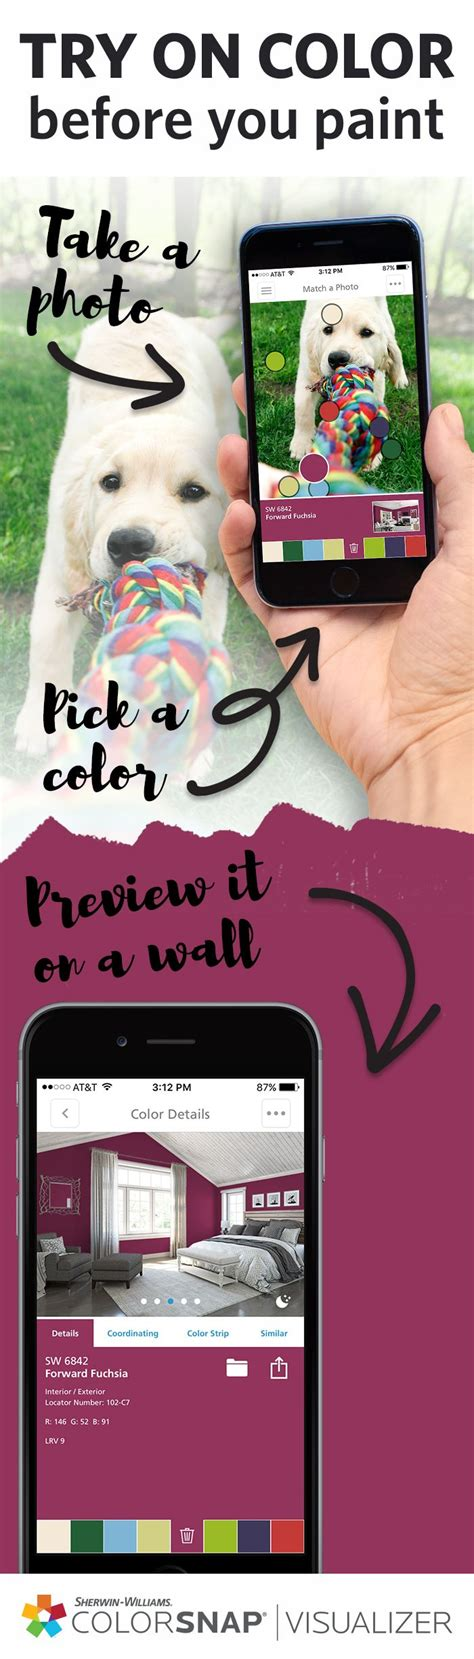 iphone app to determine paint color 188 best images about colorsnap system for painting on